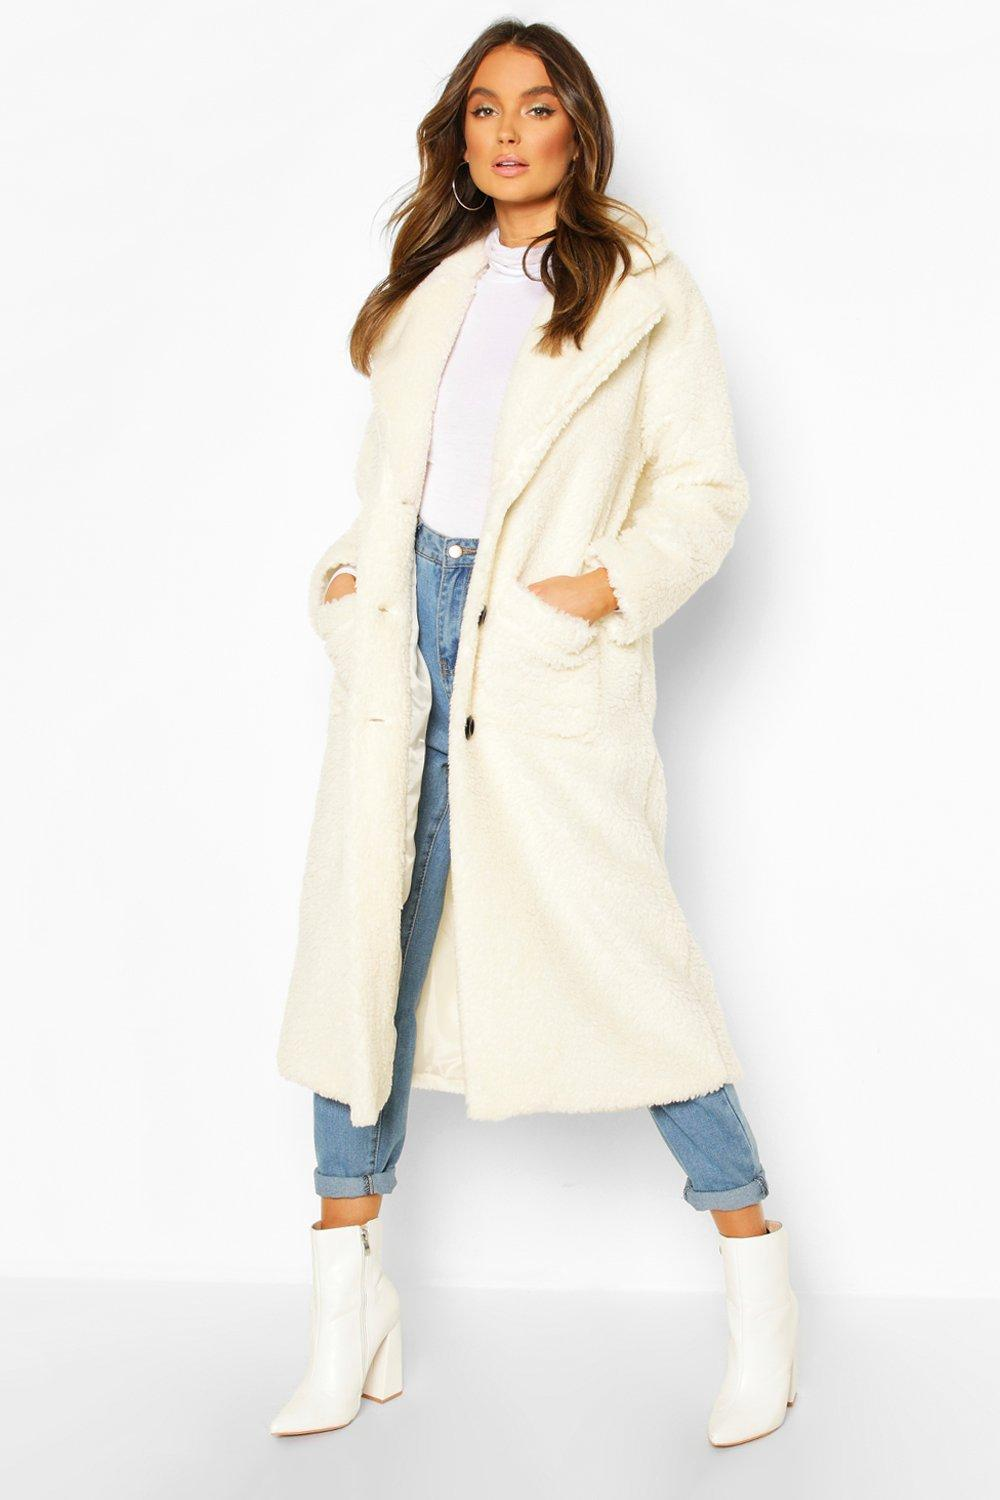 70s Jackets, Furs, Vests, Ponchos Womens Longline Teddy Faux Fur Coat - white - 12 $48.00 AT vintagedancer.com